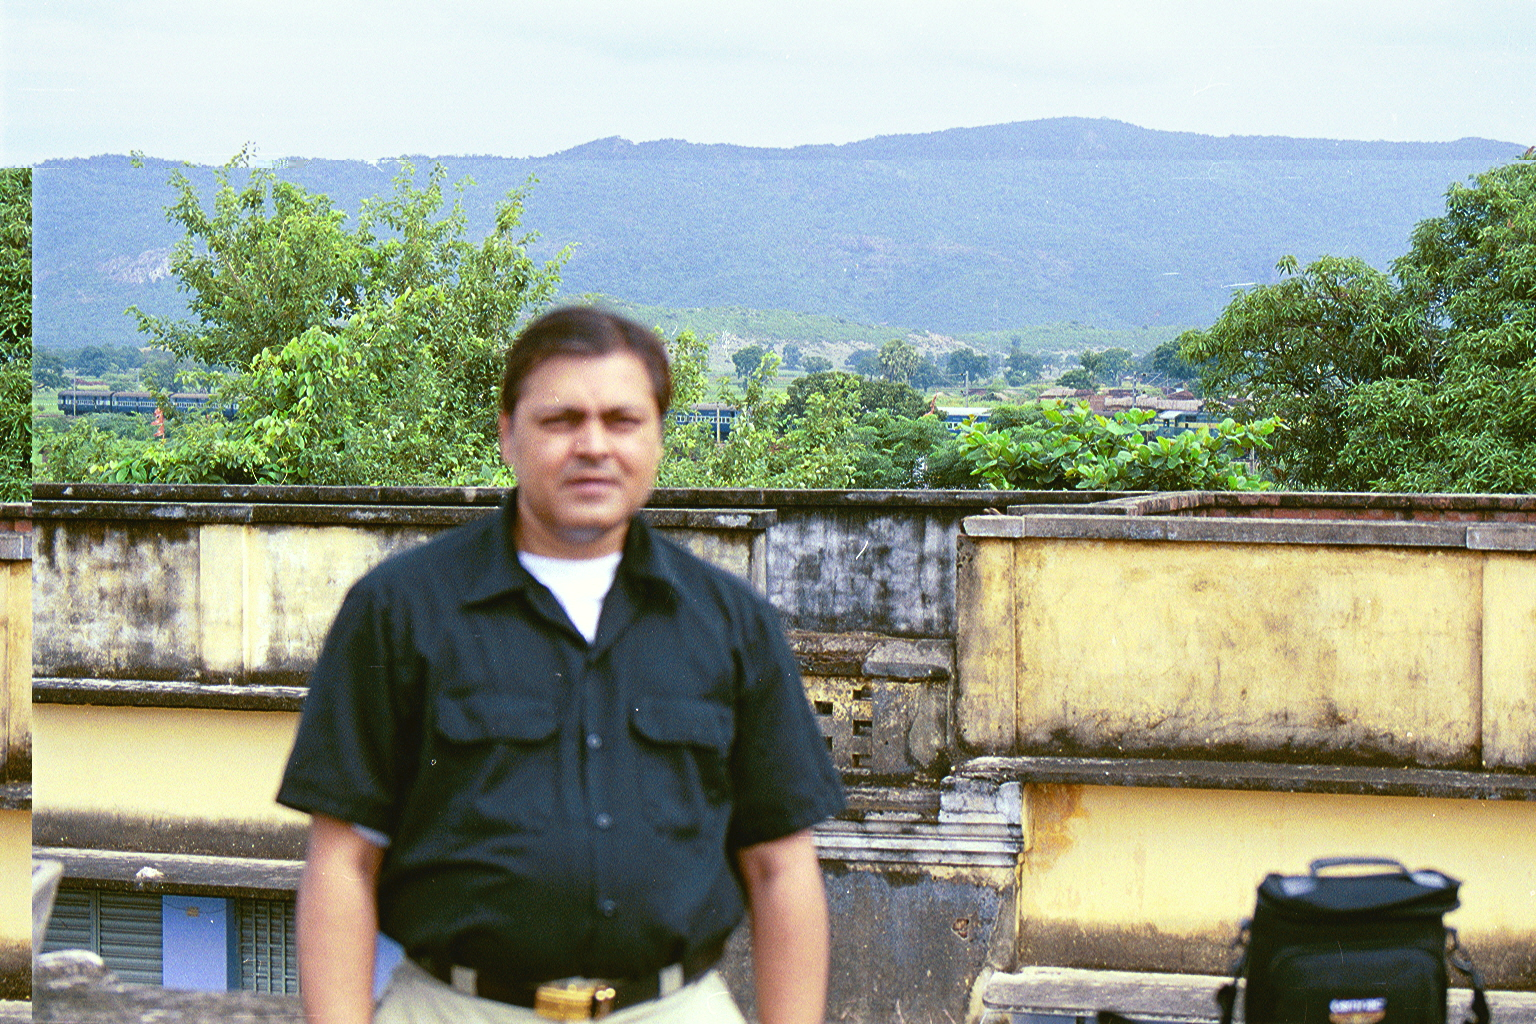 My brother Mr Anuraj Kumar Chaturvedi, ( Account-Superintendent; Indian Airlines ) on the roof of the house